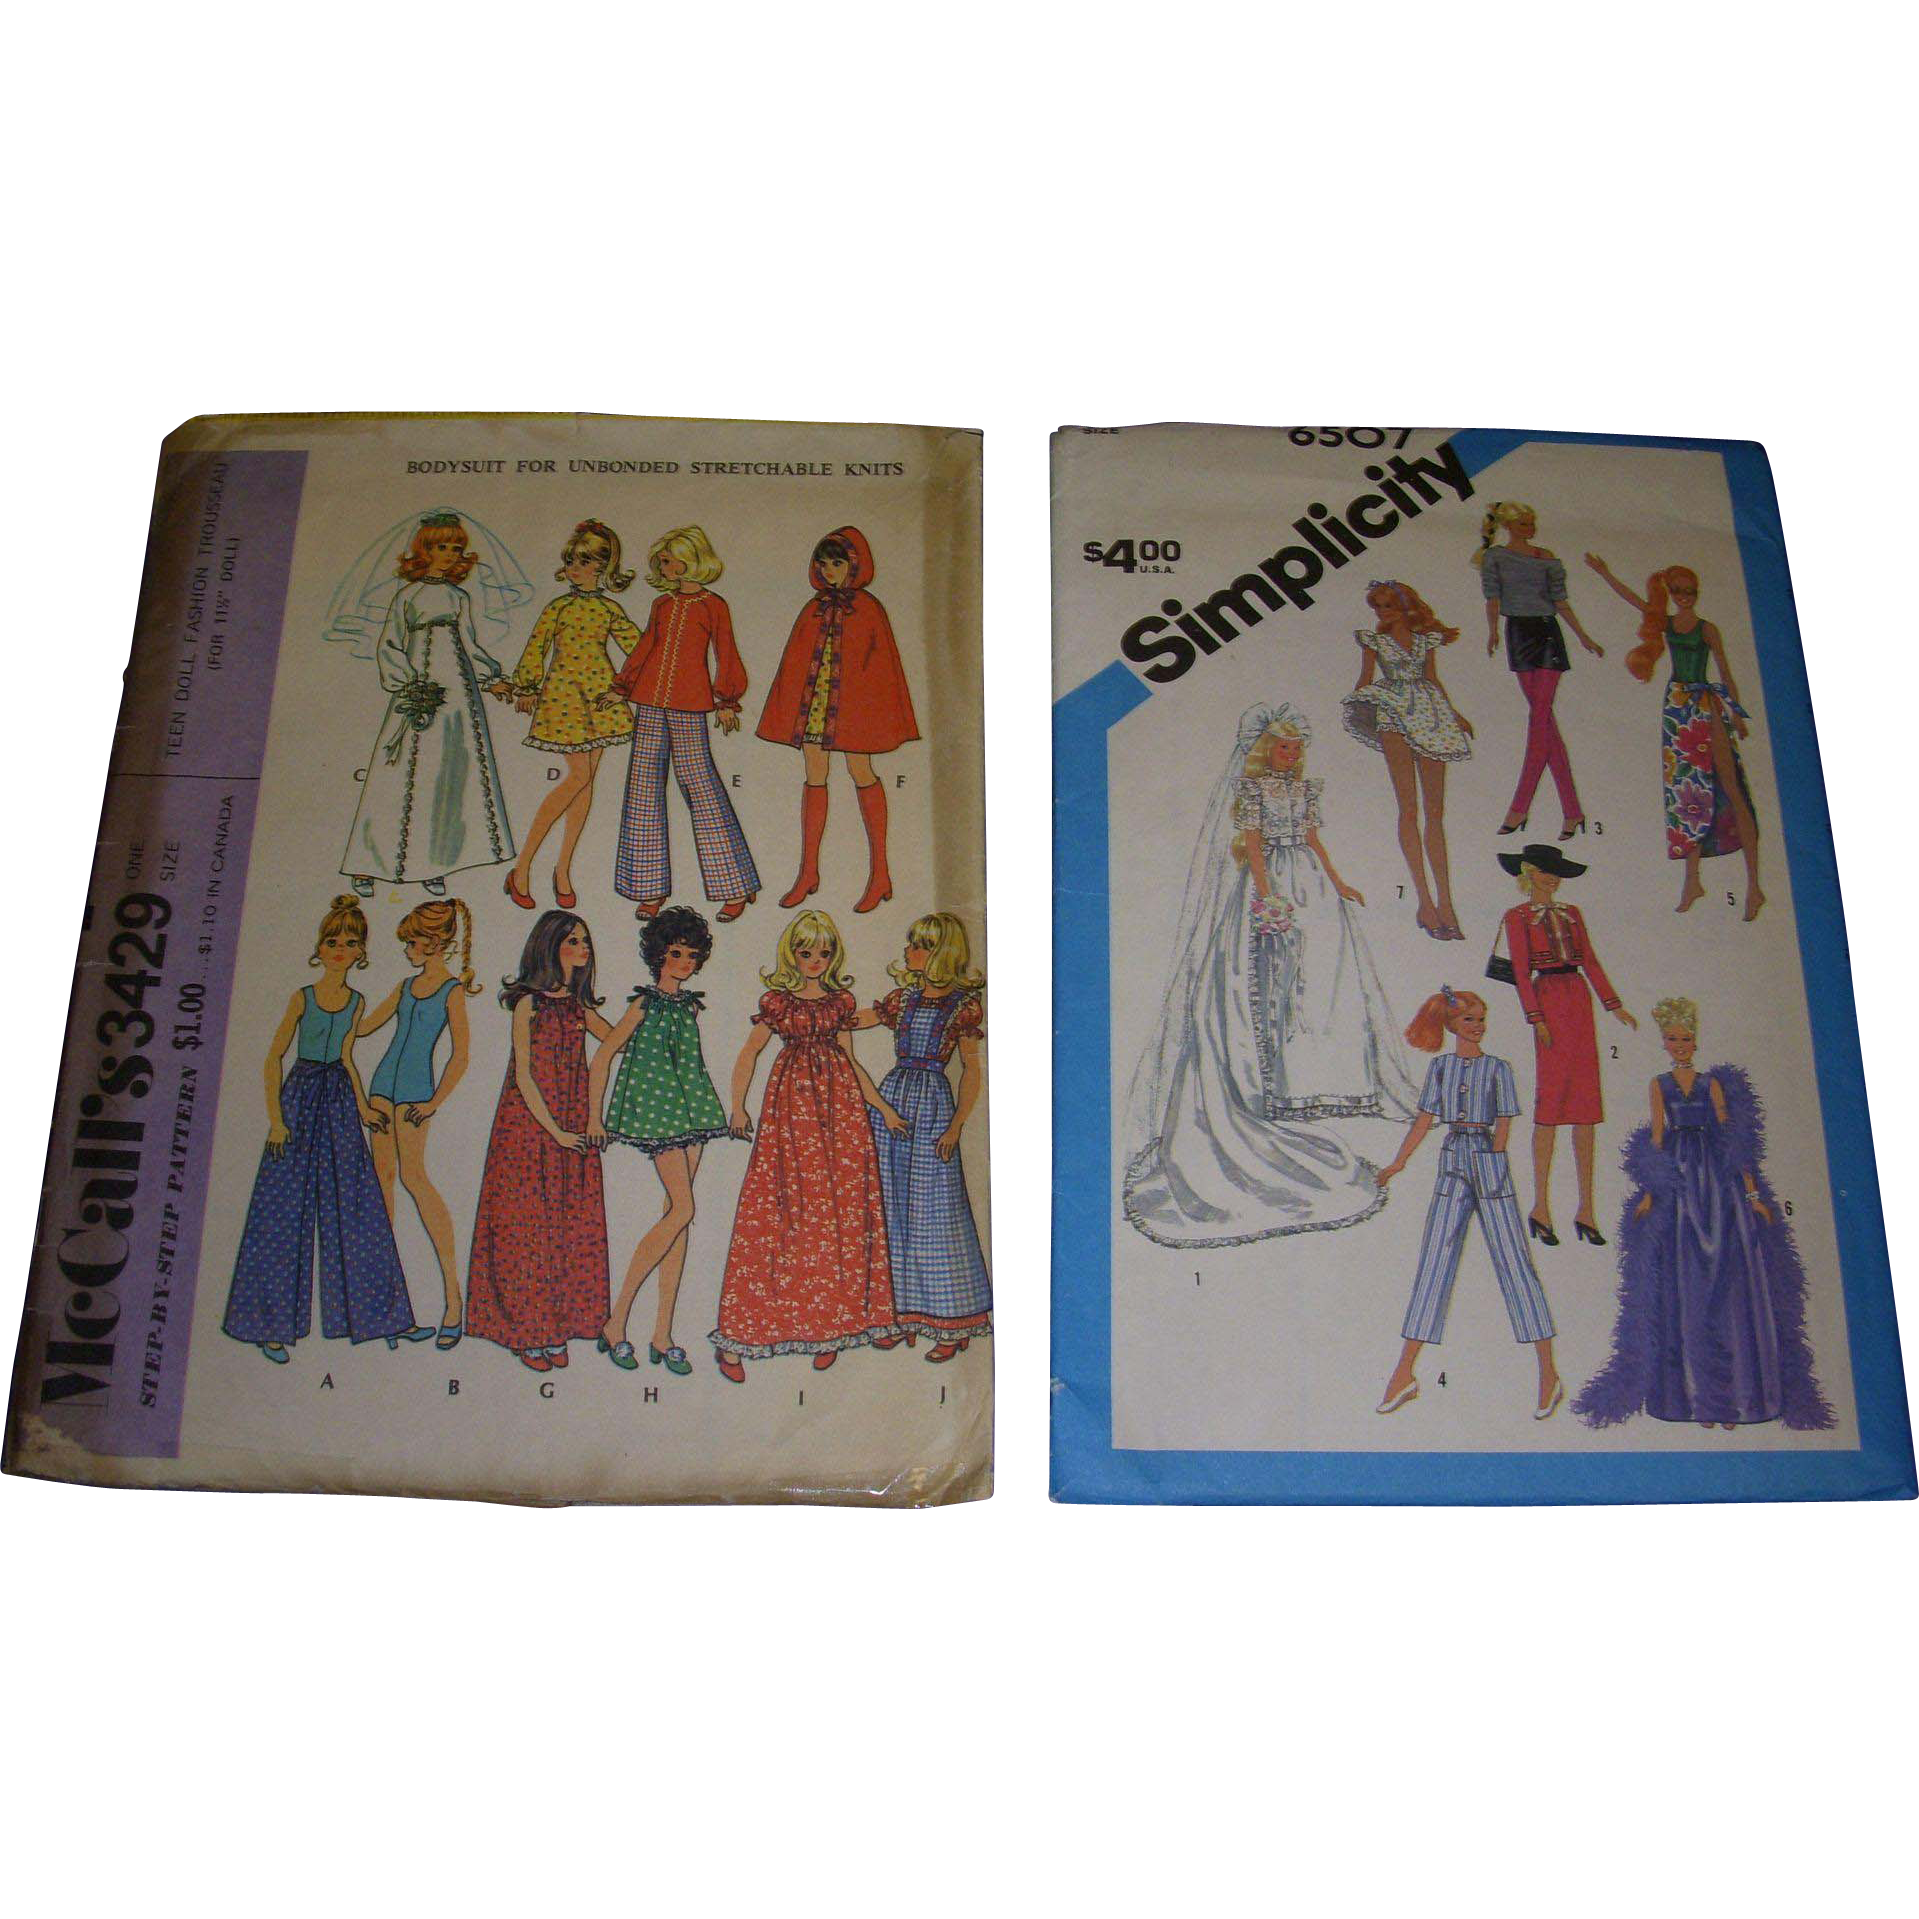 2 Vintage Doll Patterns for Barbie & Other Fashion Dolls